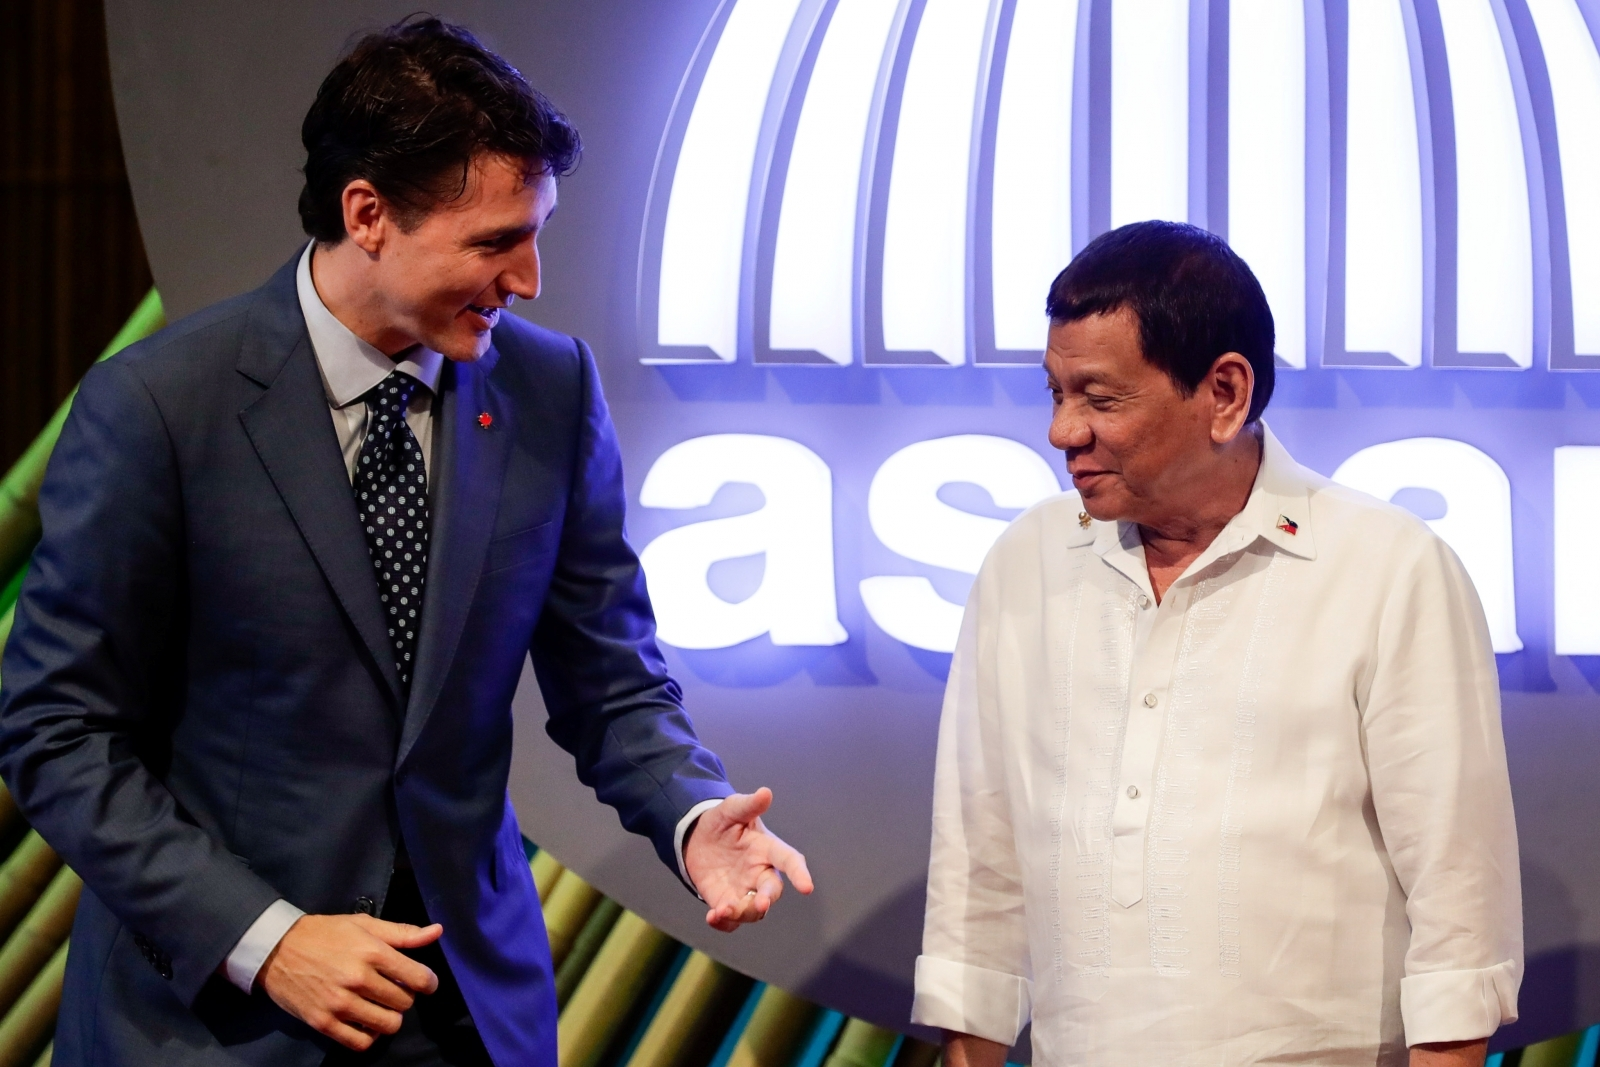 Duterte angered by Trudeau's comments